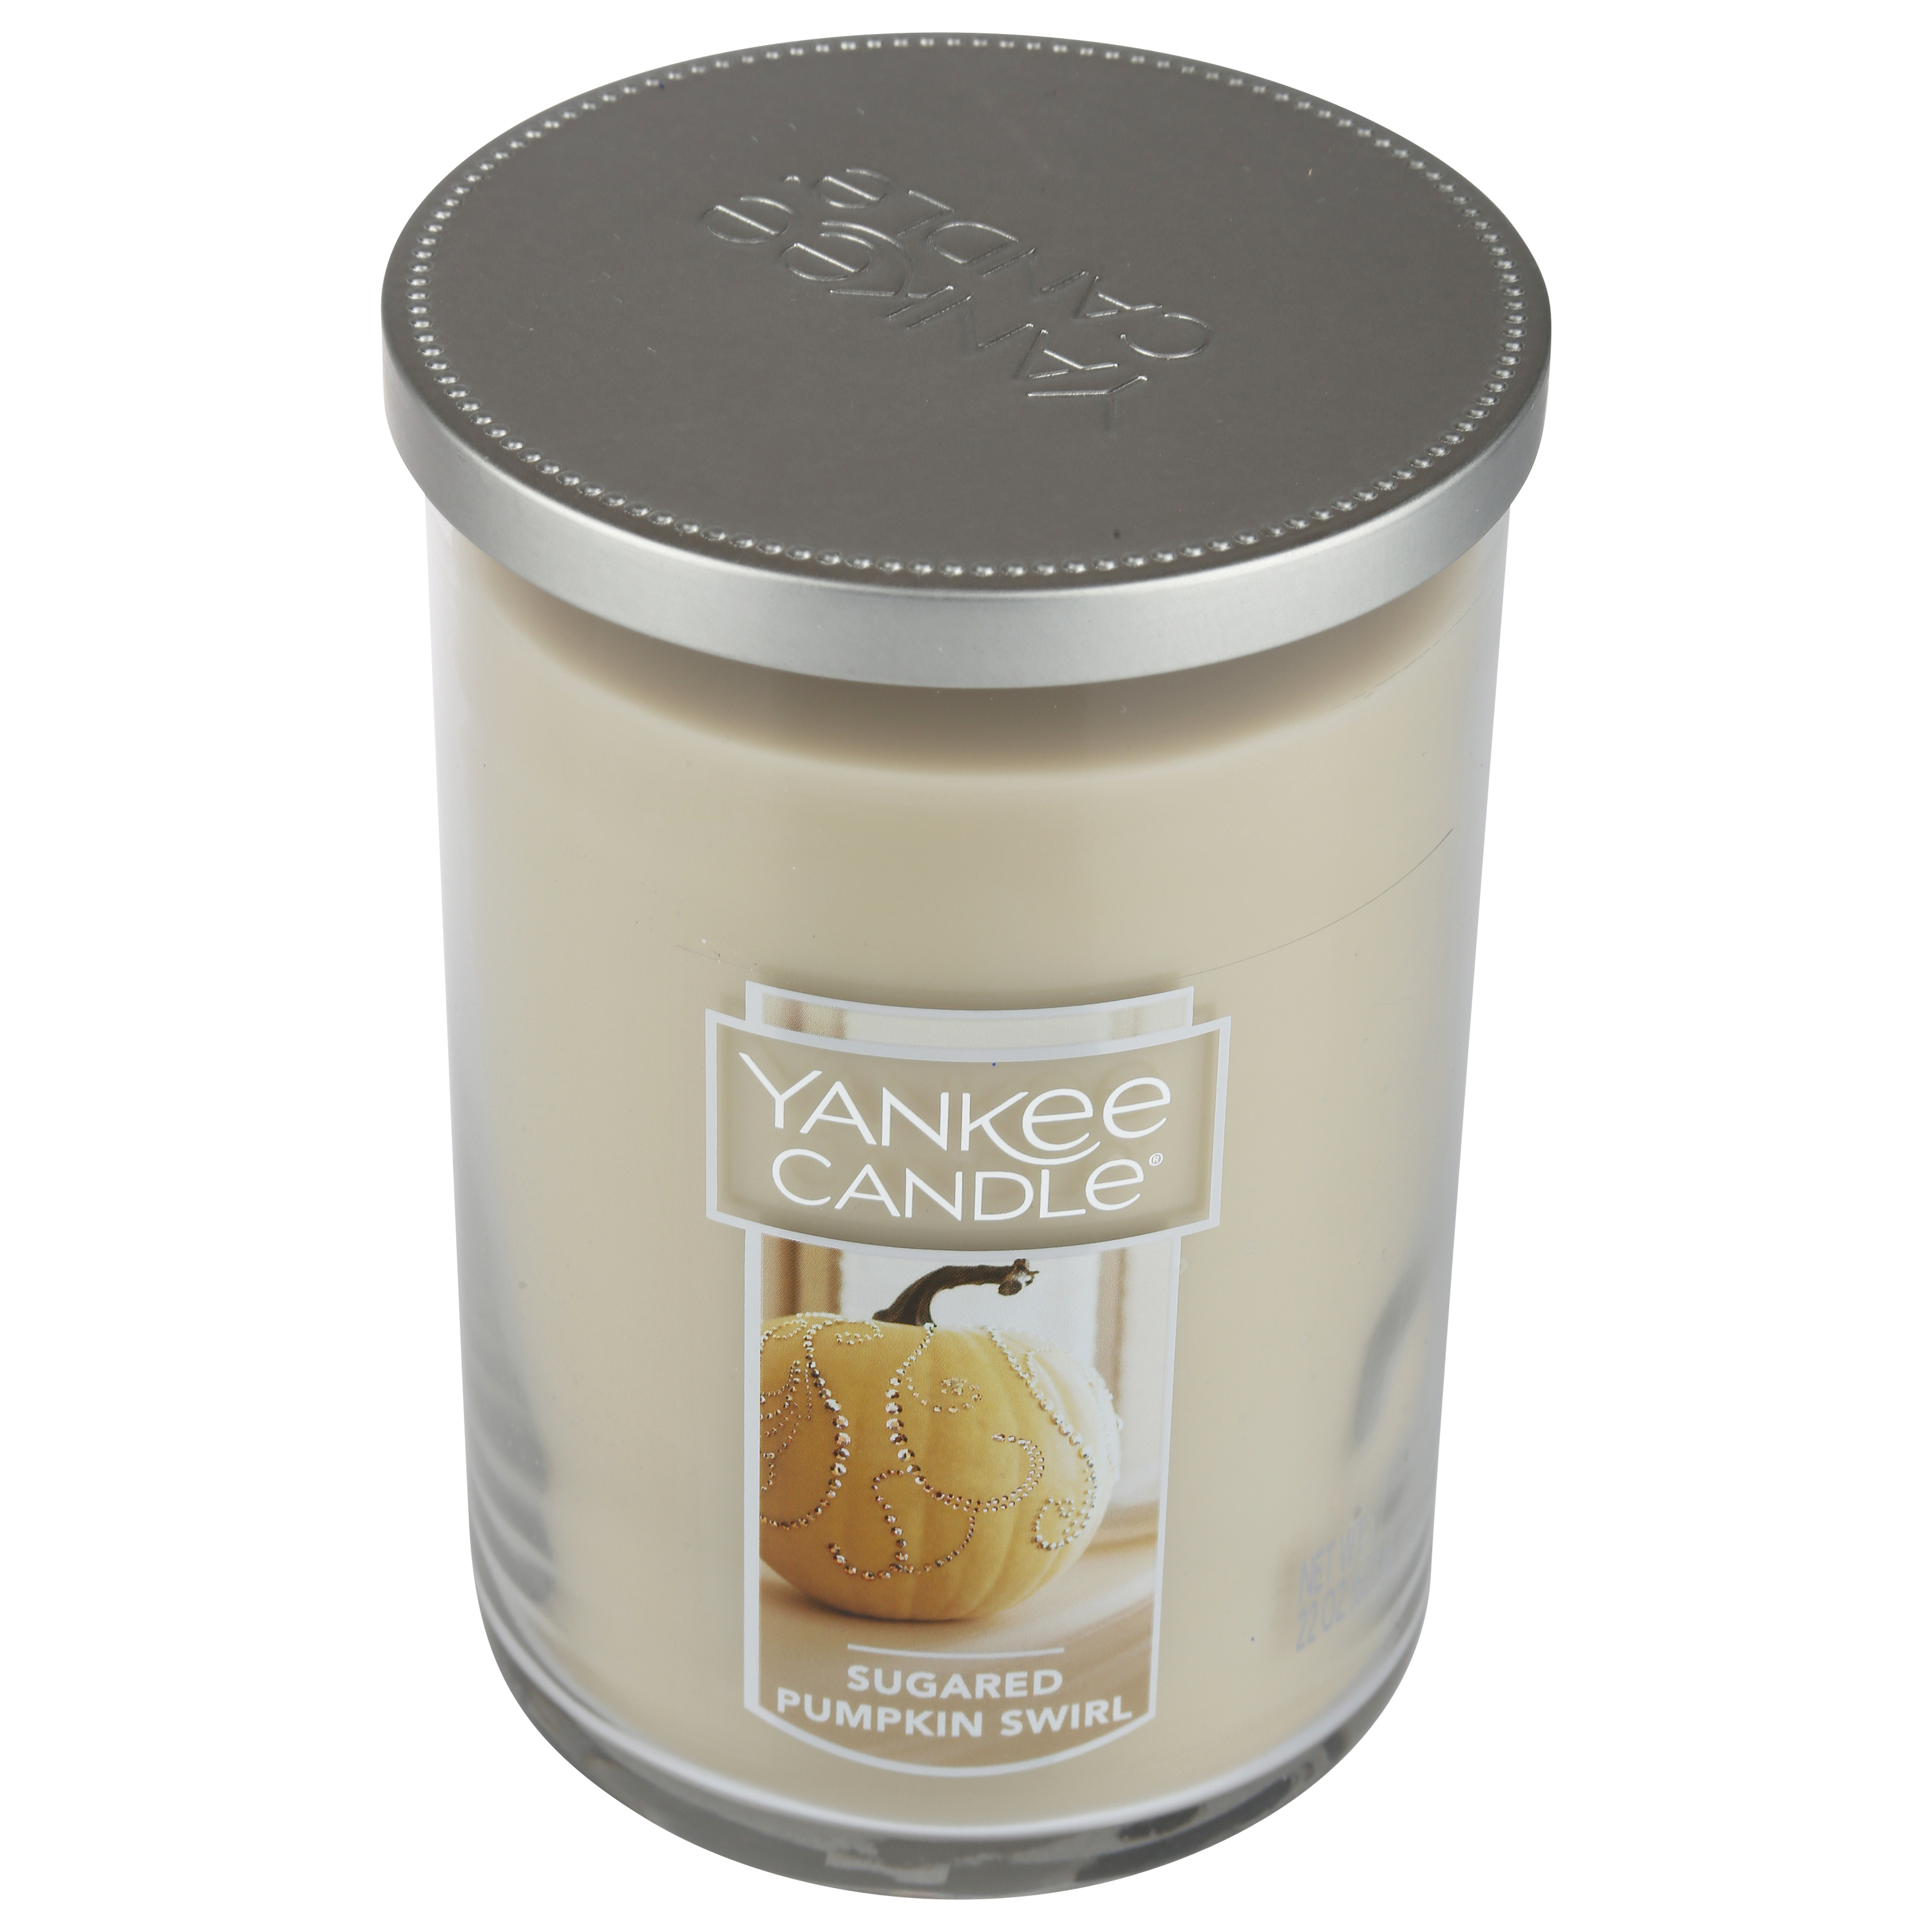 1 Yankee Candle SUGARED PUMPKIN SWIRL Jar Candle 22 oz